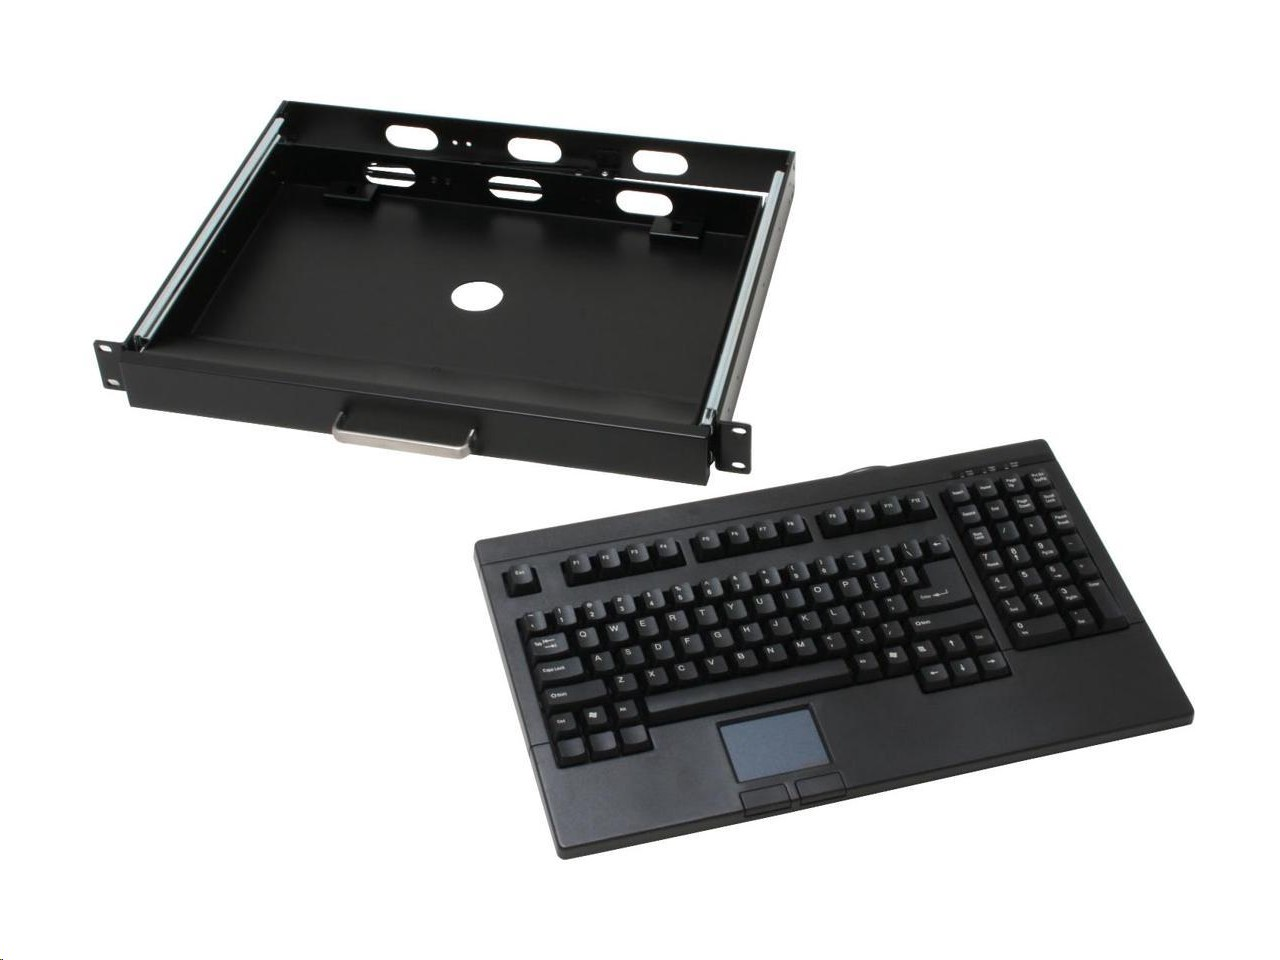 Adesso RackMount Keyboard Drawer 104-Key w/Touchpad PS/2 Black ACK-730PB-MRP